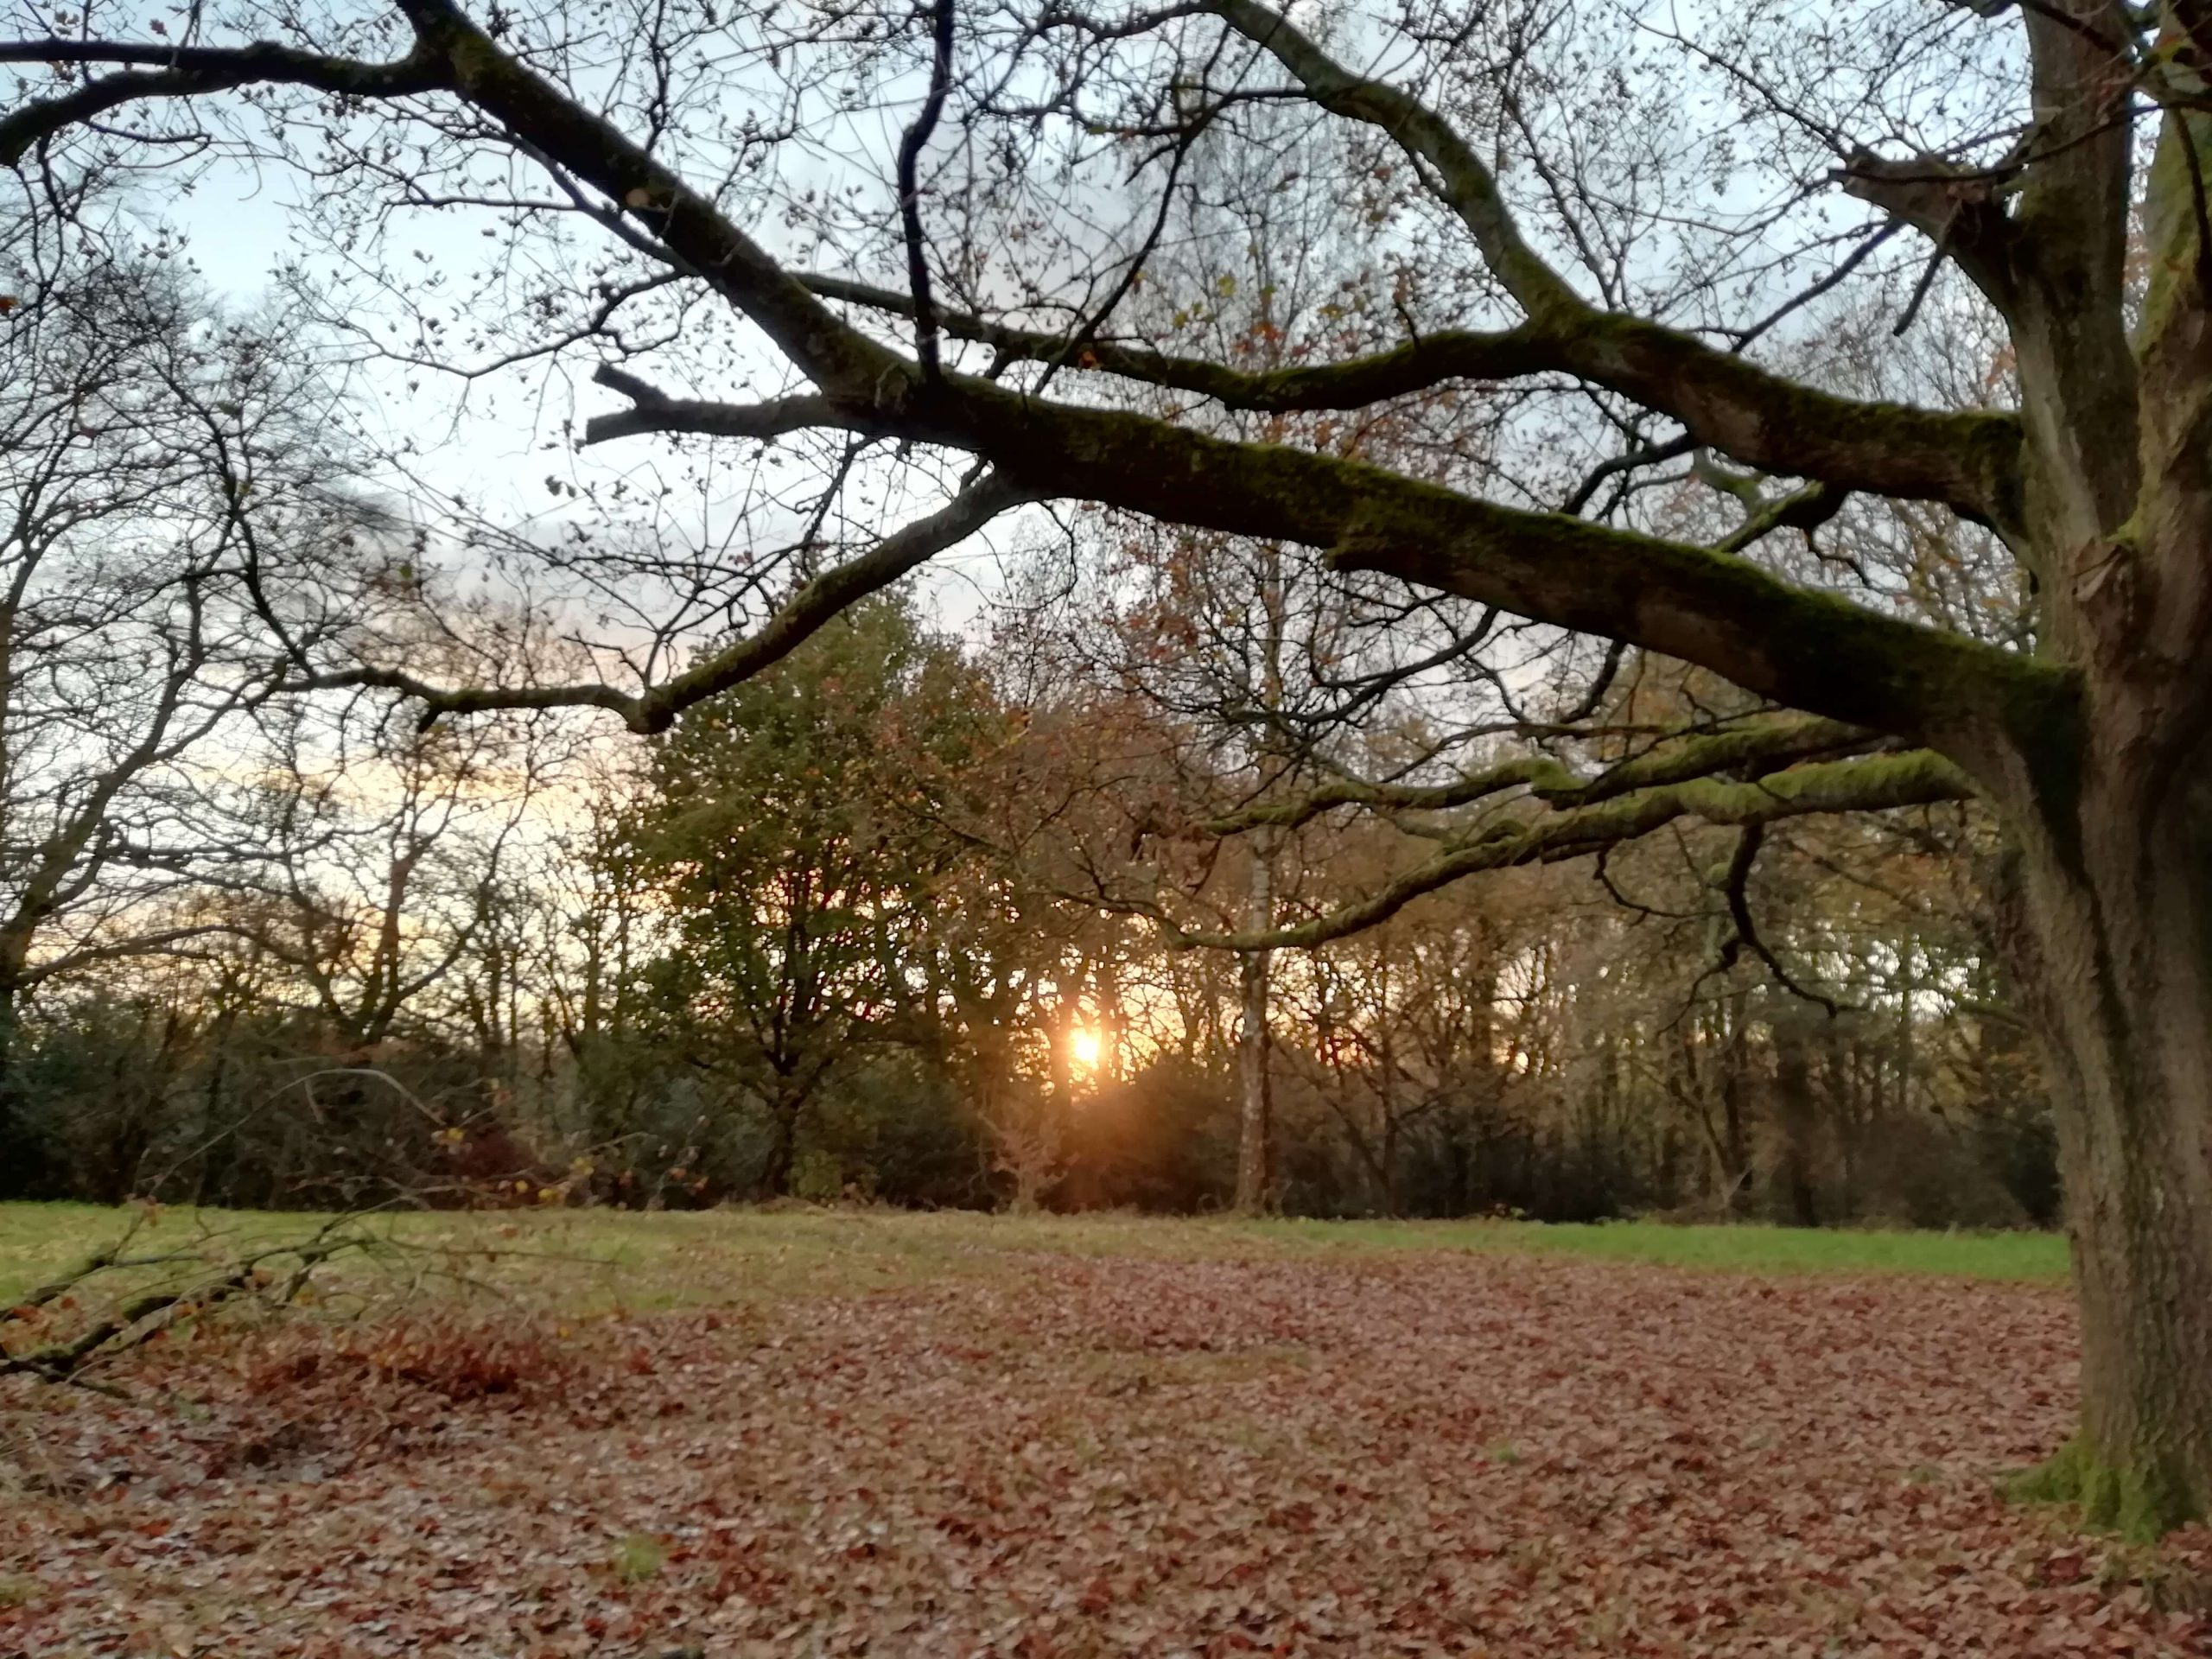 close up of tree branches with sunset setting in trees behind